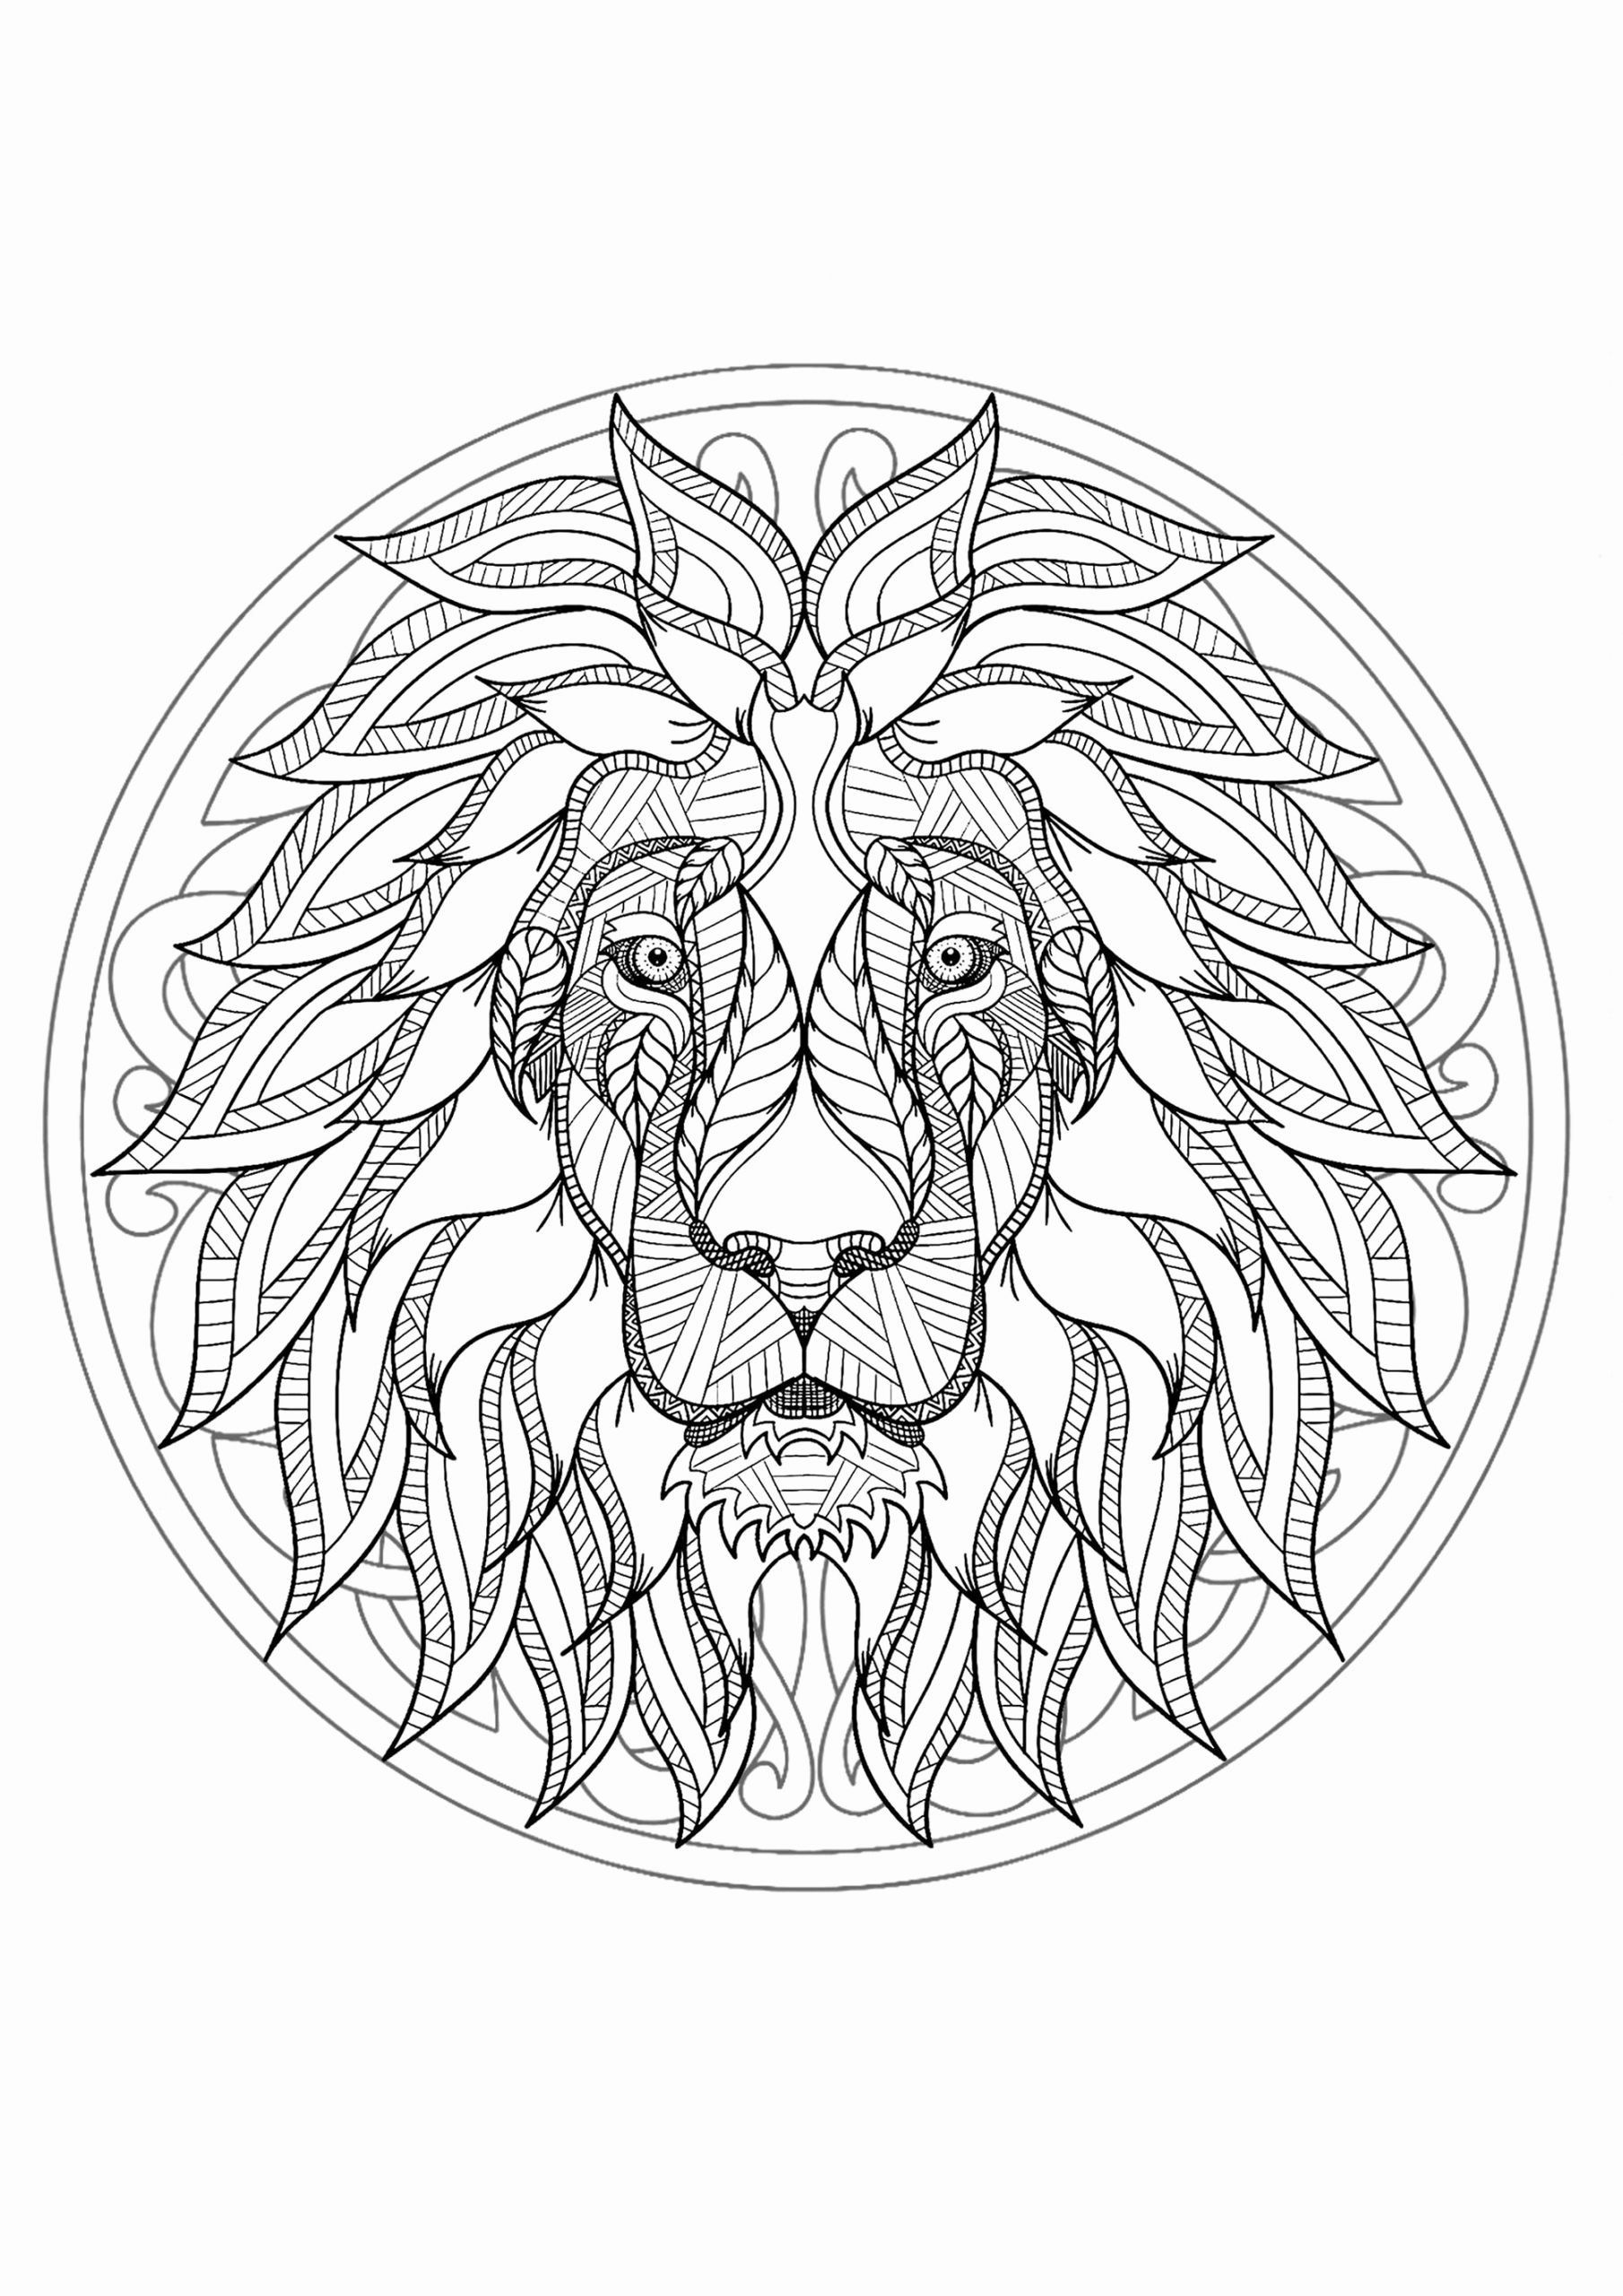 Coloring Online For Toddlers New Mandalas To Color For Kids Mandalas Kids Coloring Pages Mandalas Zum Ausdrucken Mandala Zum Ausdrucken Ausmalbilder